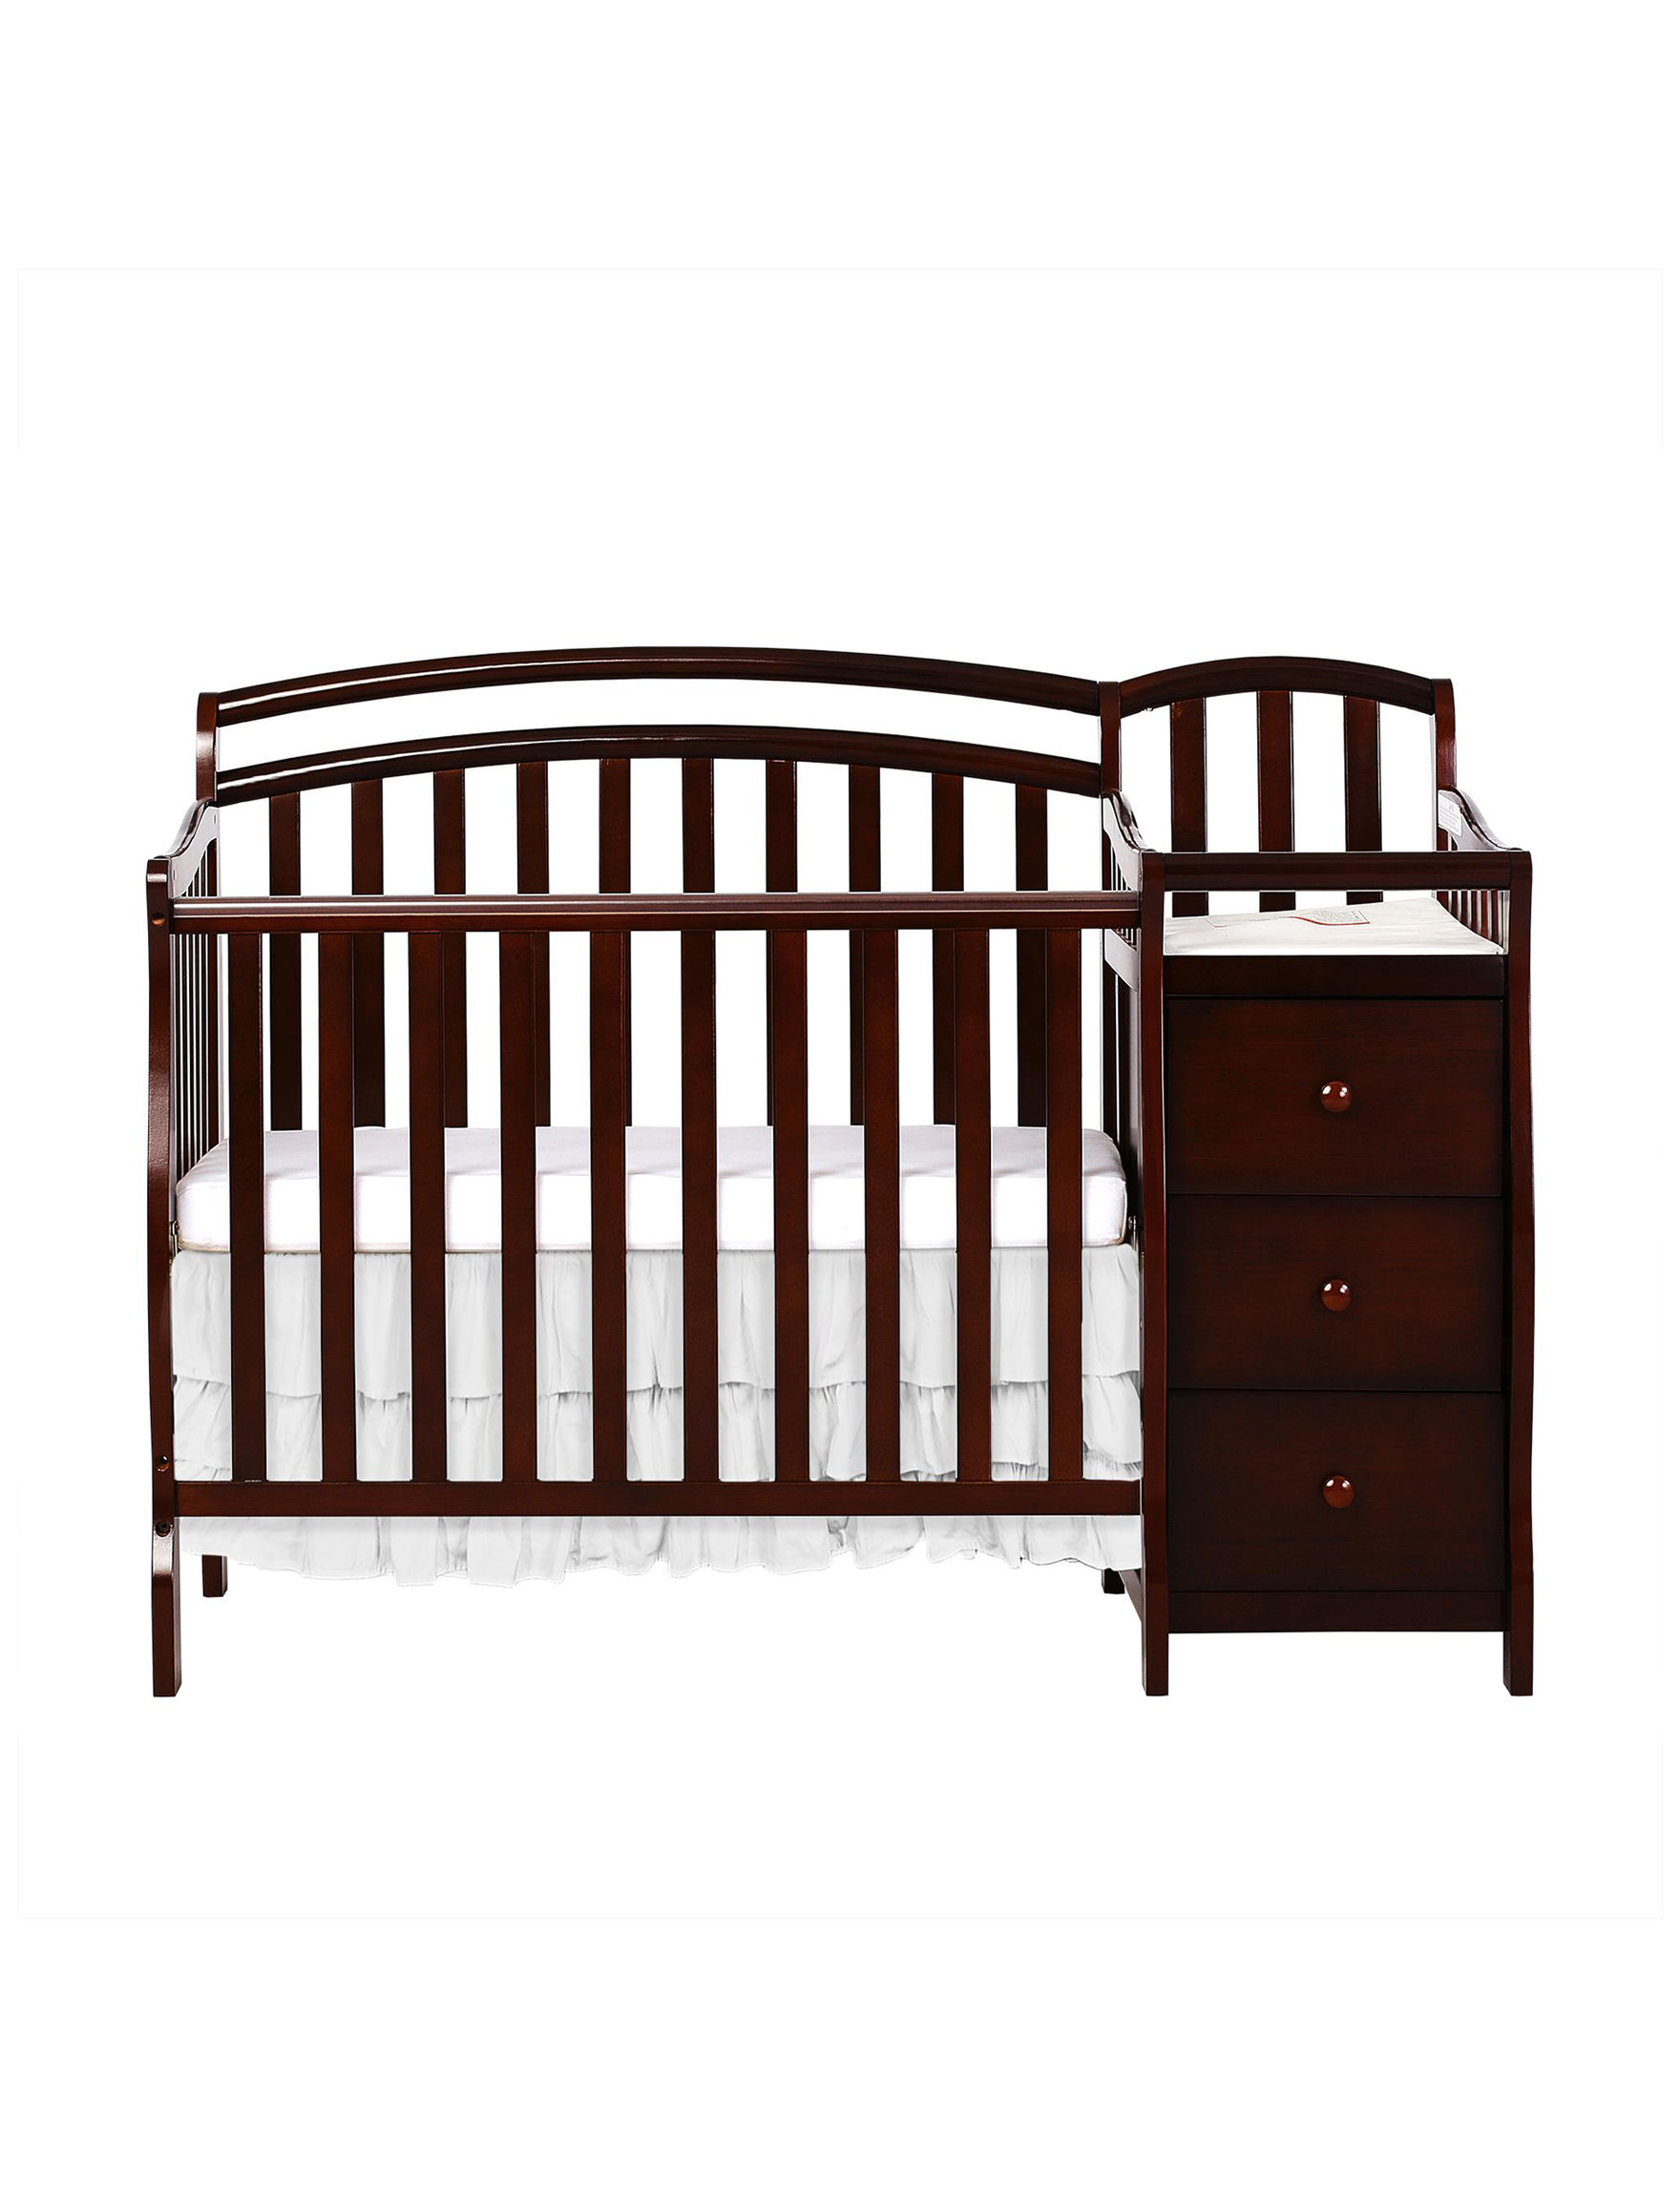 Dream On Me Espresso Beds & Headboards Changing Tables Cribs Dressers & Chests Bedroom Furniture Storage & Organization